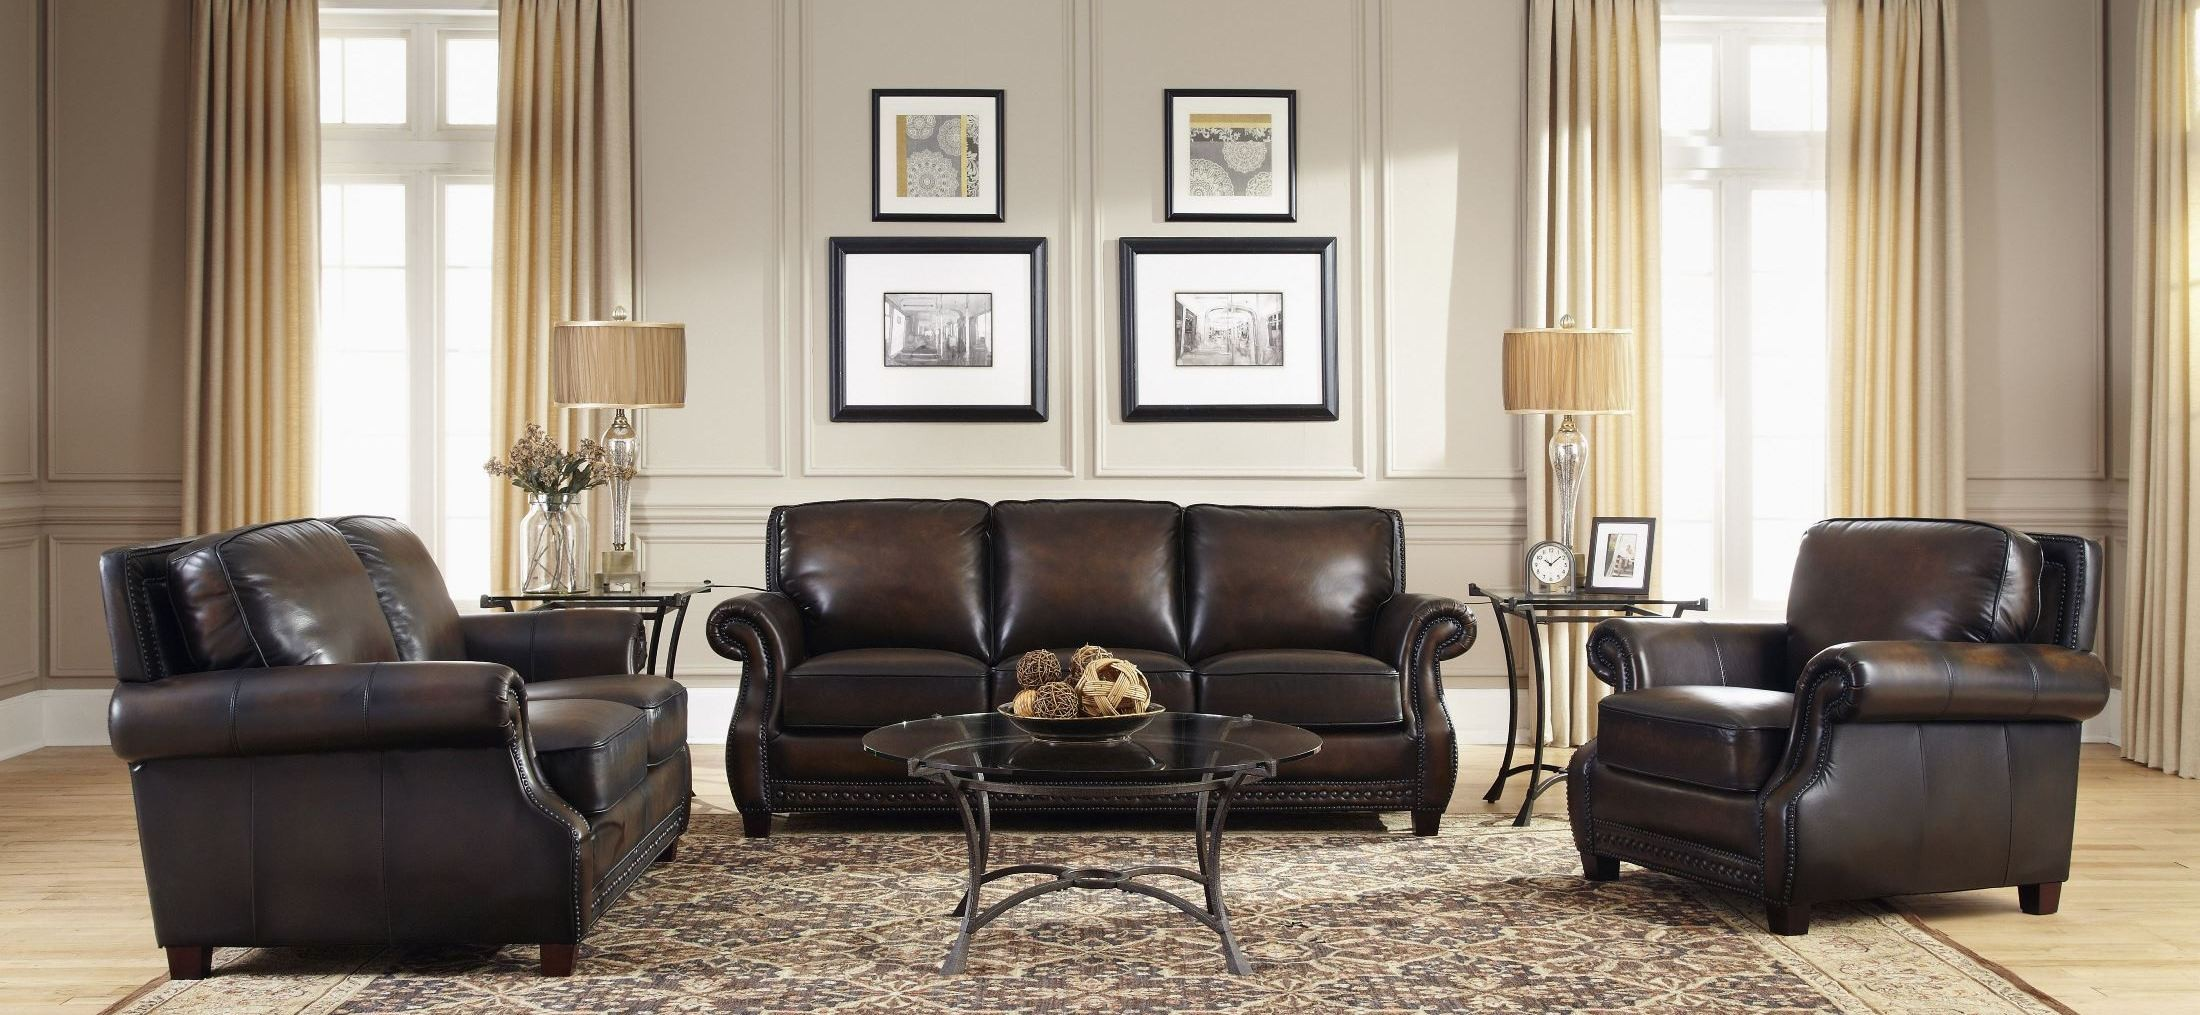 prato black tan leather living room set from lazzaro wh 5070 30